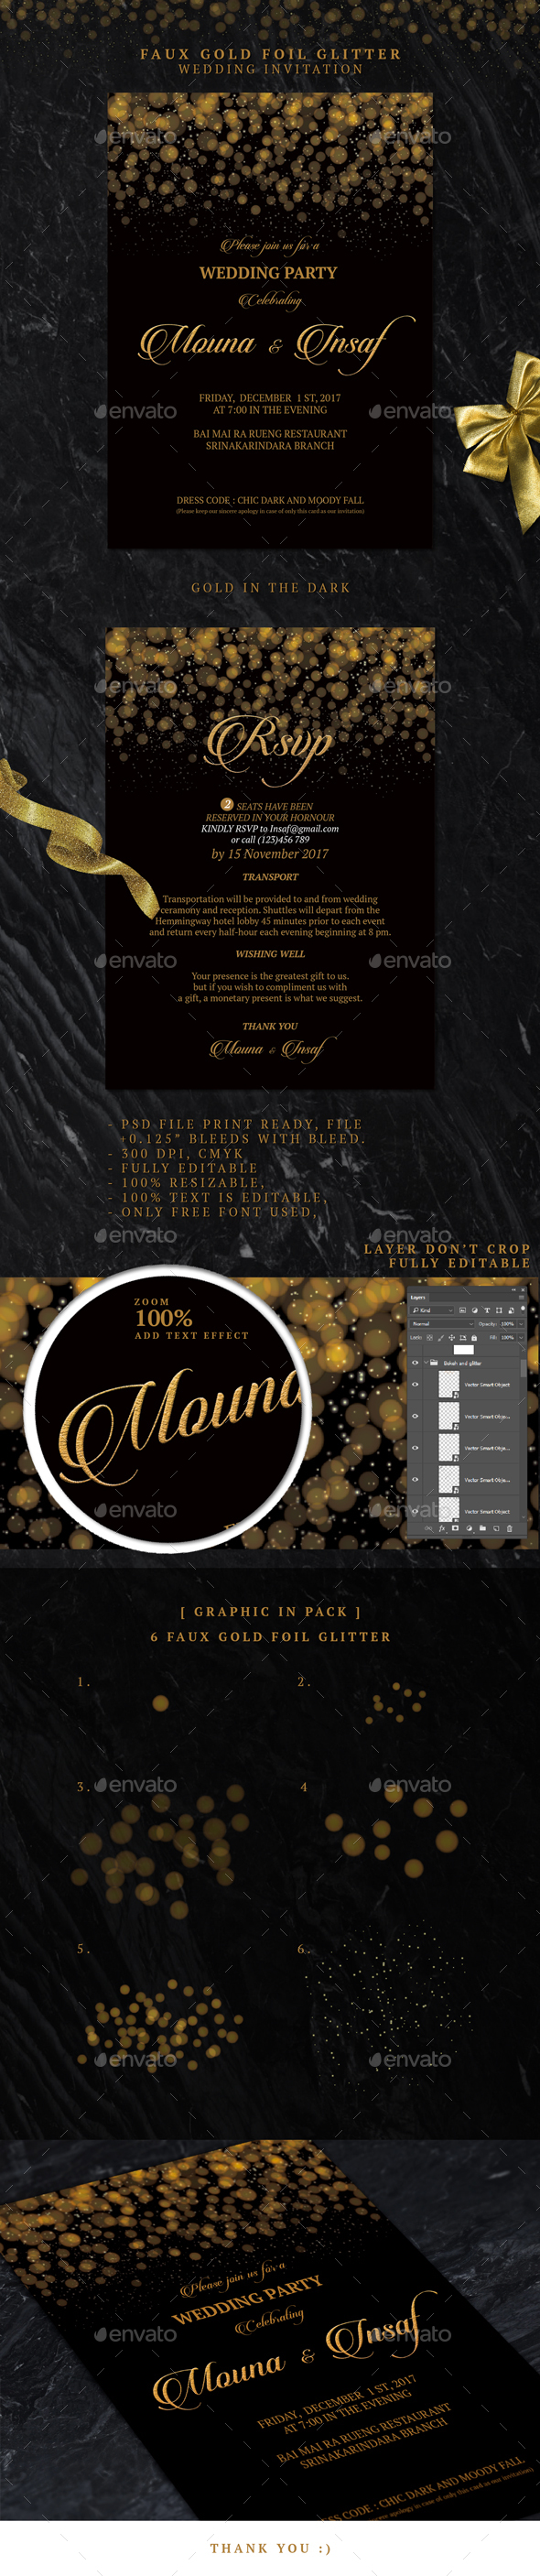 Faux Gold Foil Glitter Wedding Invitation - Weddings Cards & Invites